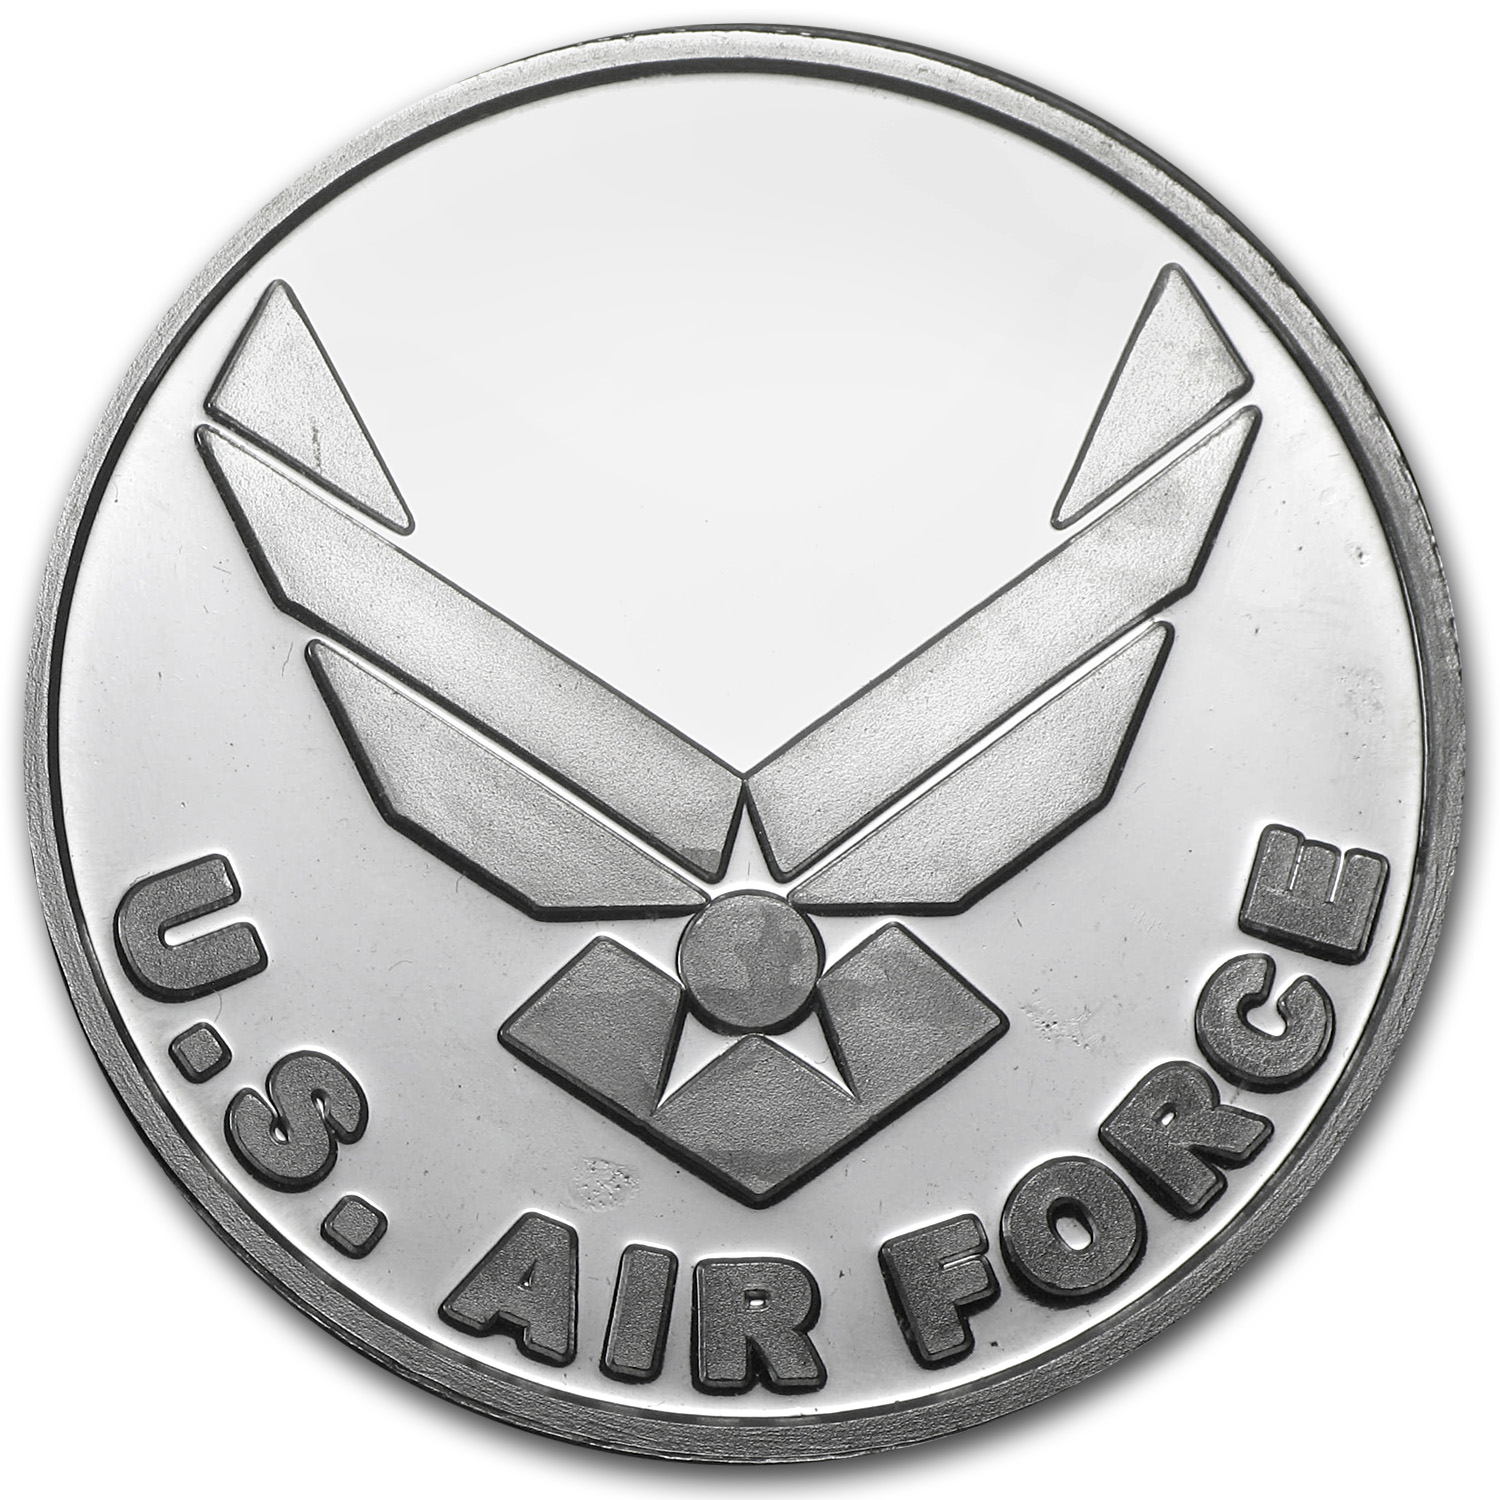 1 oz Silver Rounds - U.S. Air Force (w/Box & Capsule)